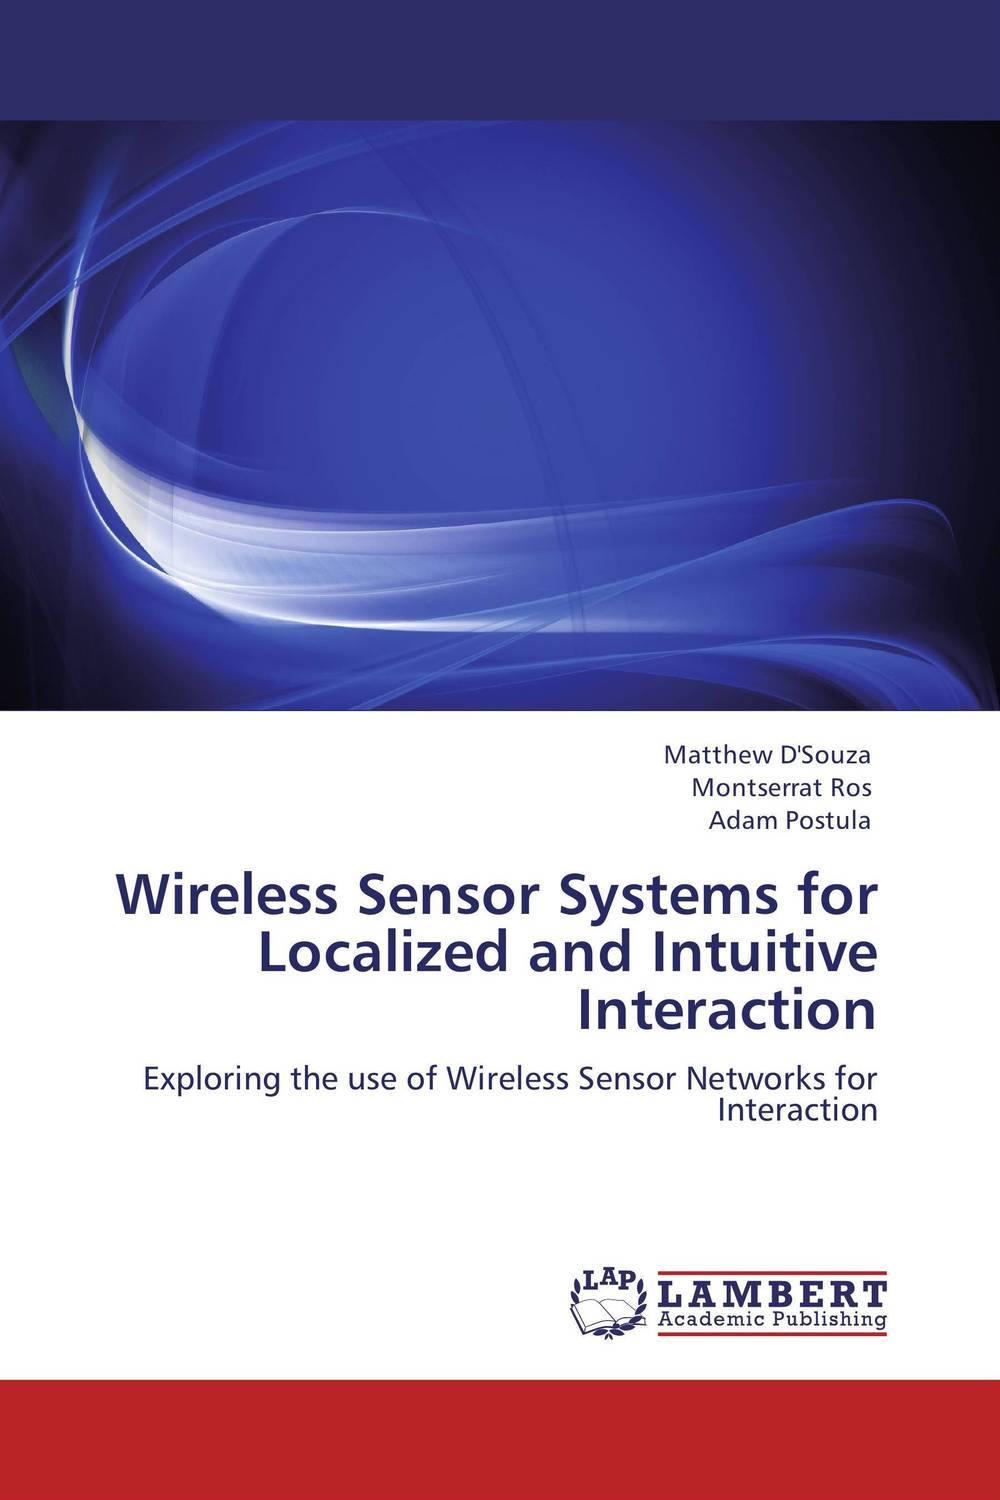 Wireless Sensor Systems for Localized and Intuitive Interaction prasanta kumar hota and anil kumar singh synthetic photoresponsive systems